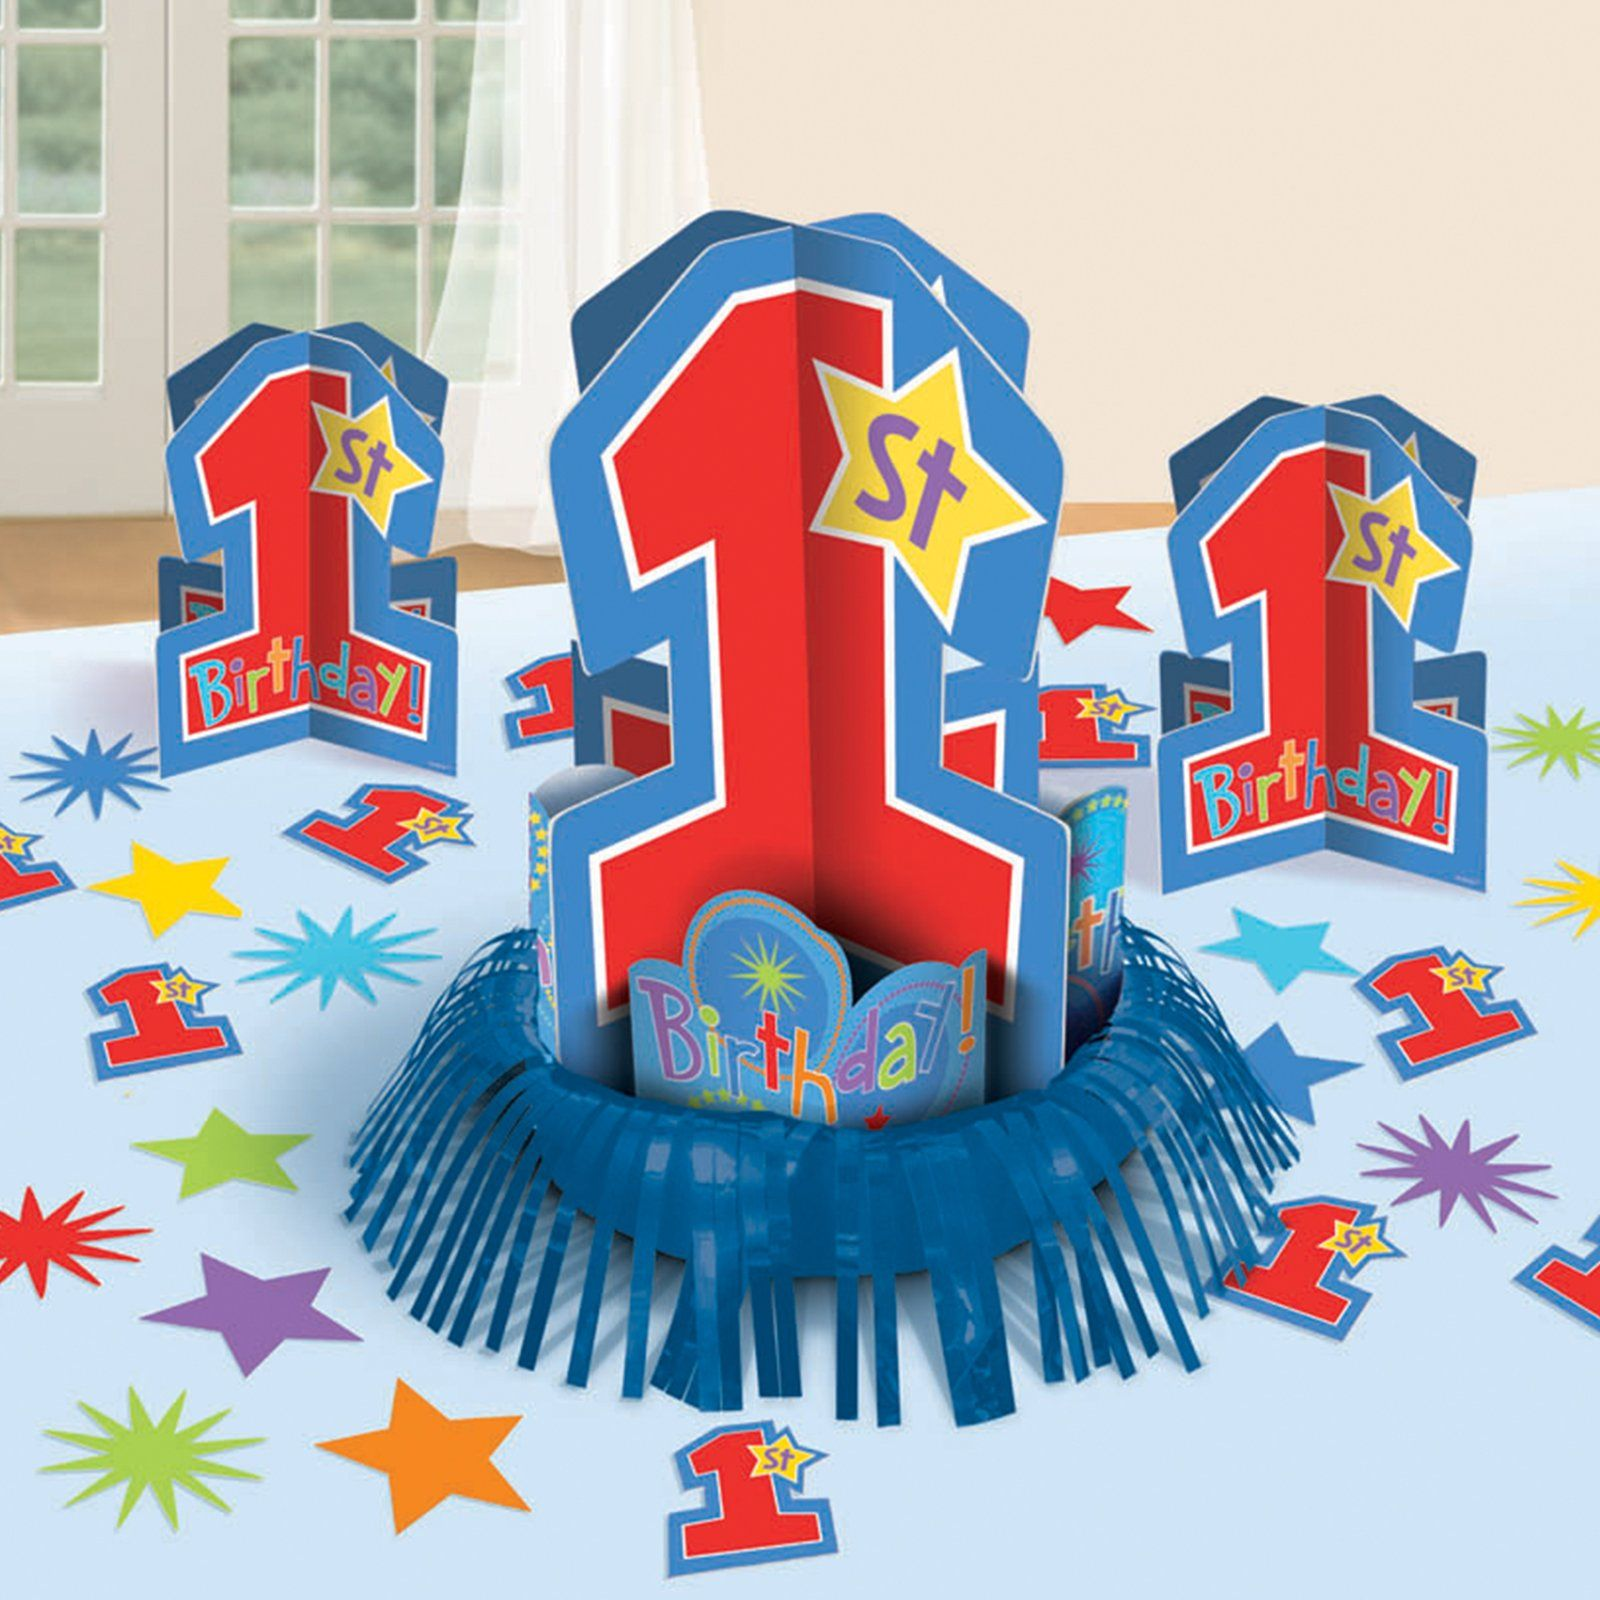 One derful birthday boy table decorating kit